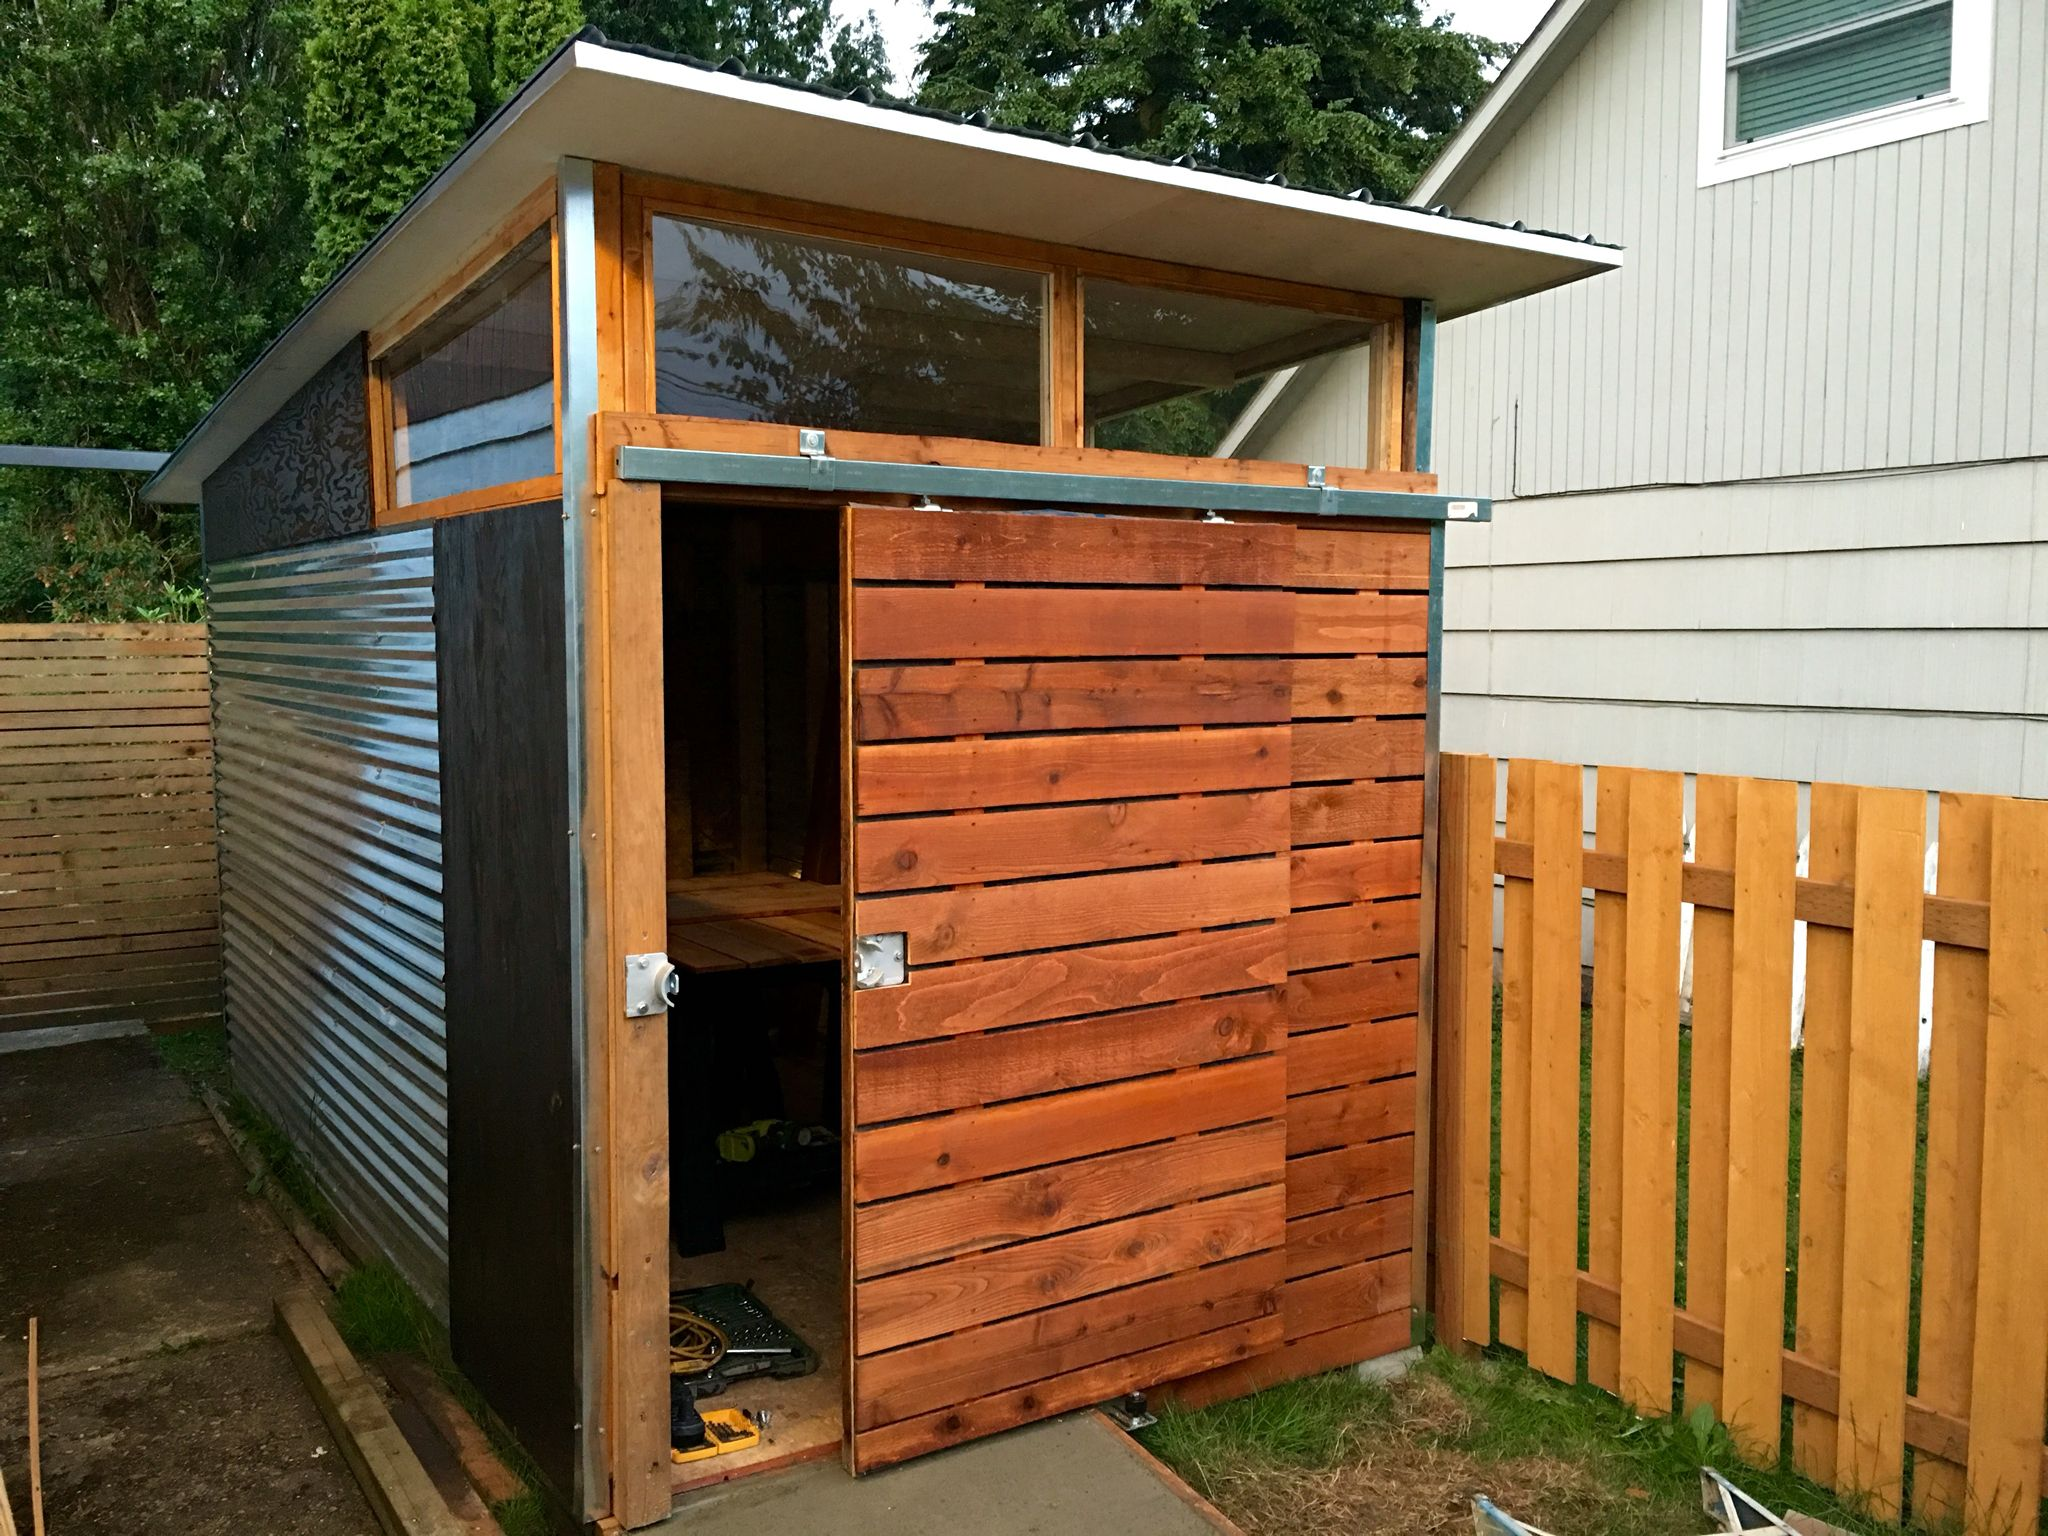 Md100 modern shed tiny home took 4 weekends to complete for Modern shed roof